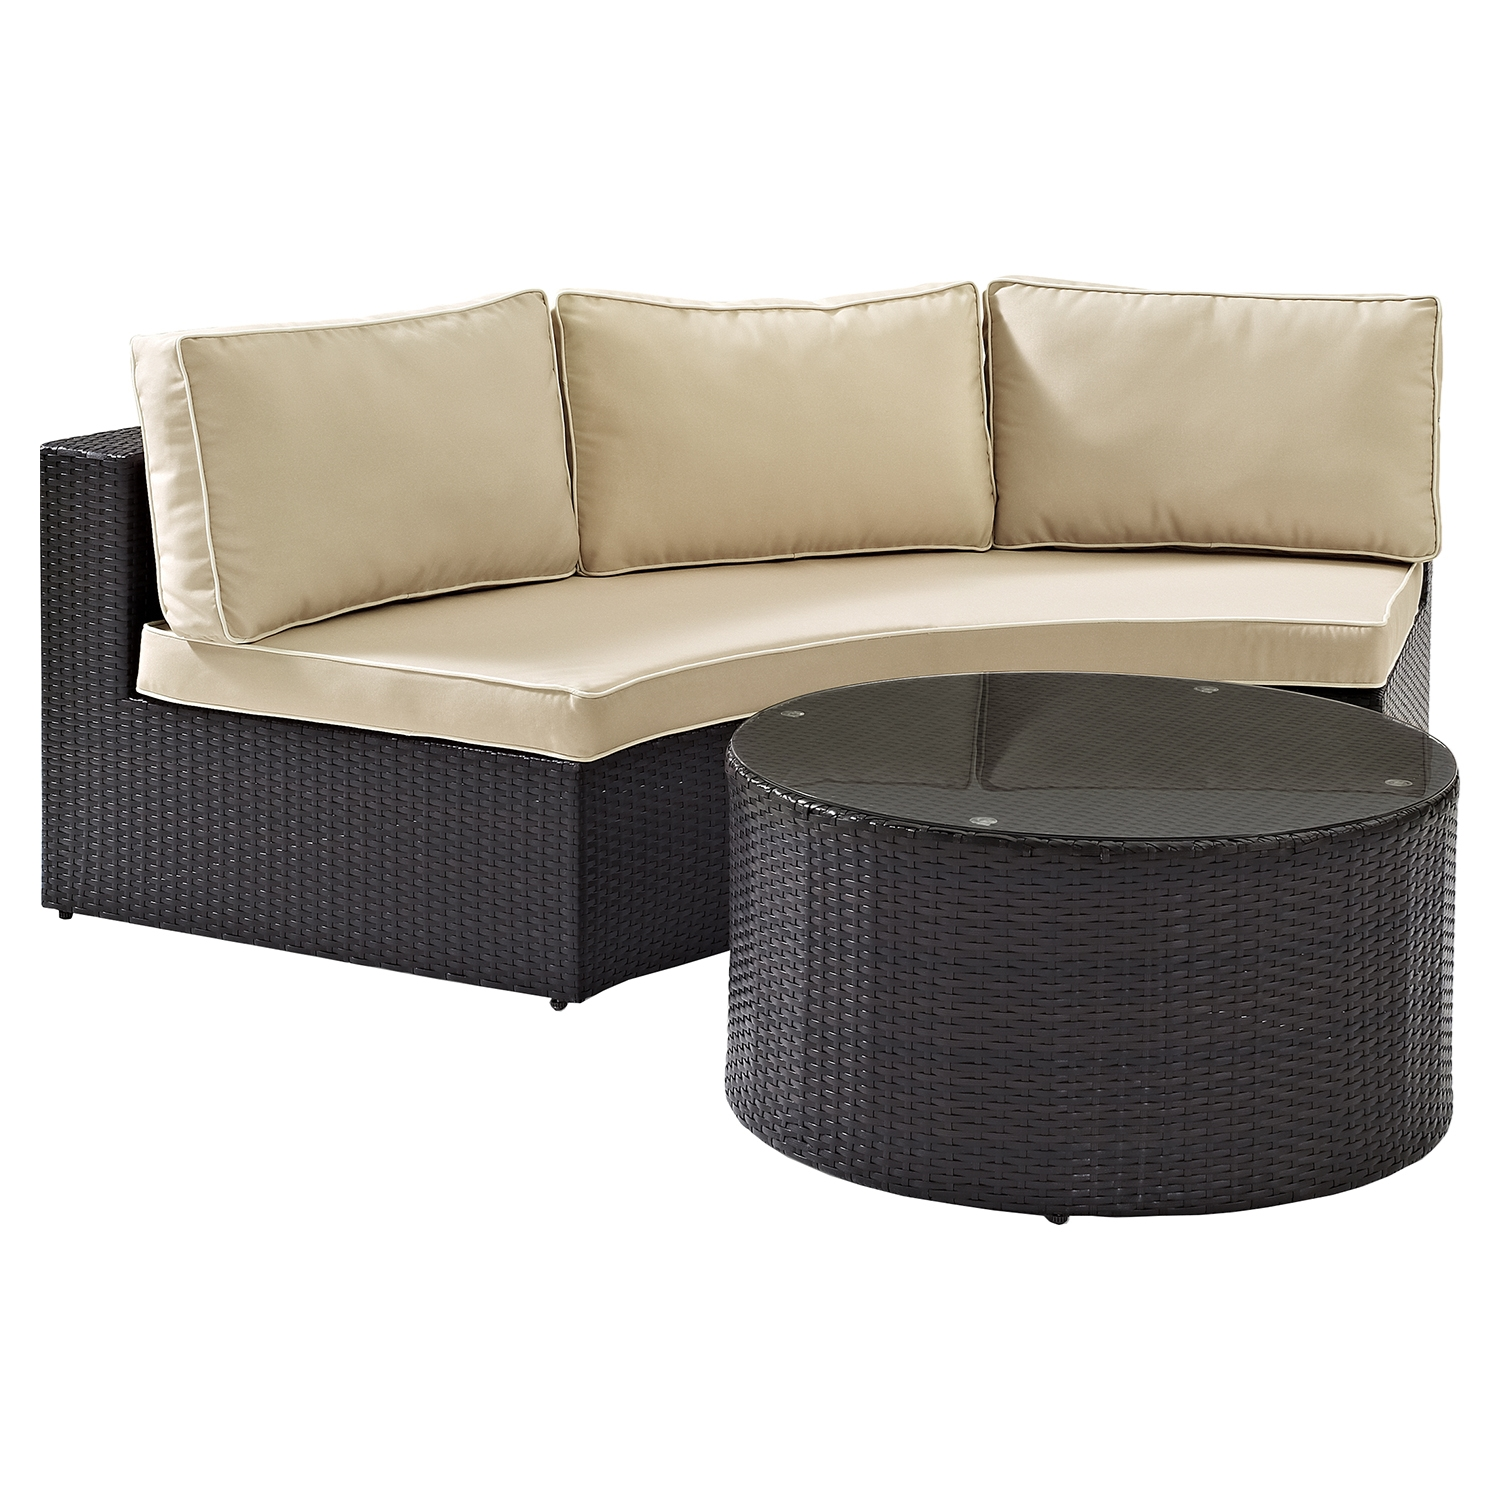 Catalina 2-piece Outdoor Wicker Seating Set - Sand